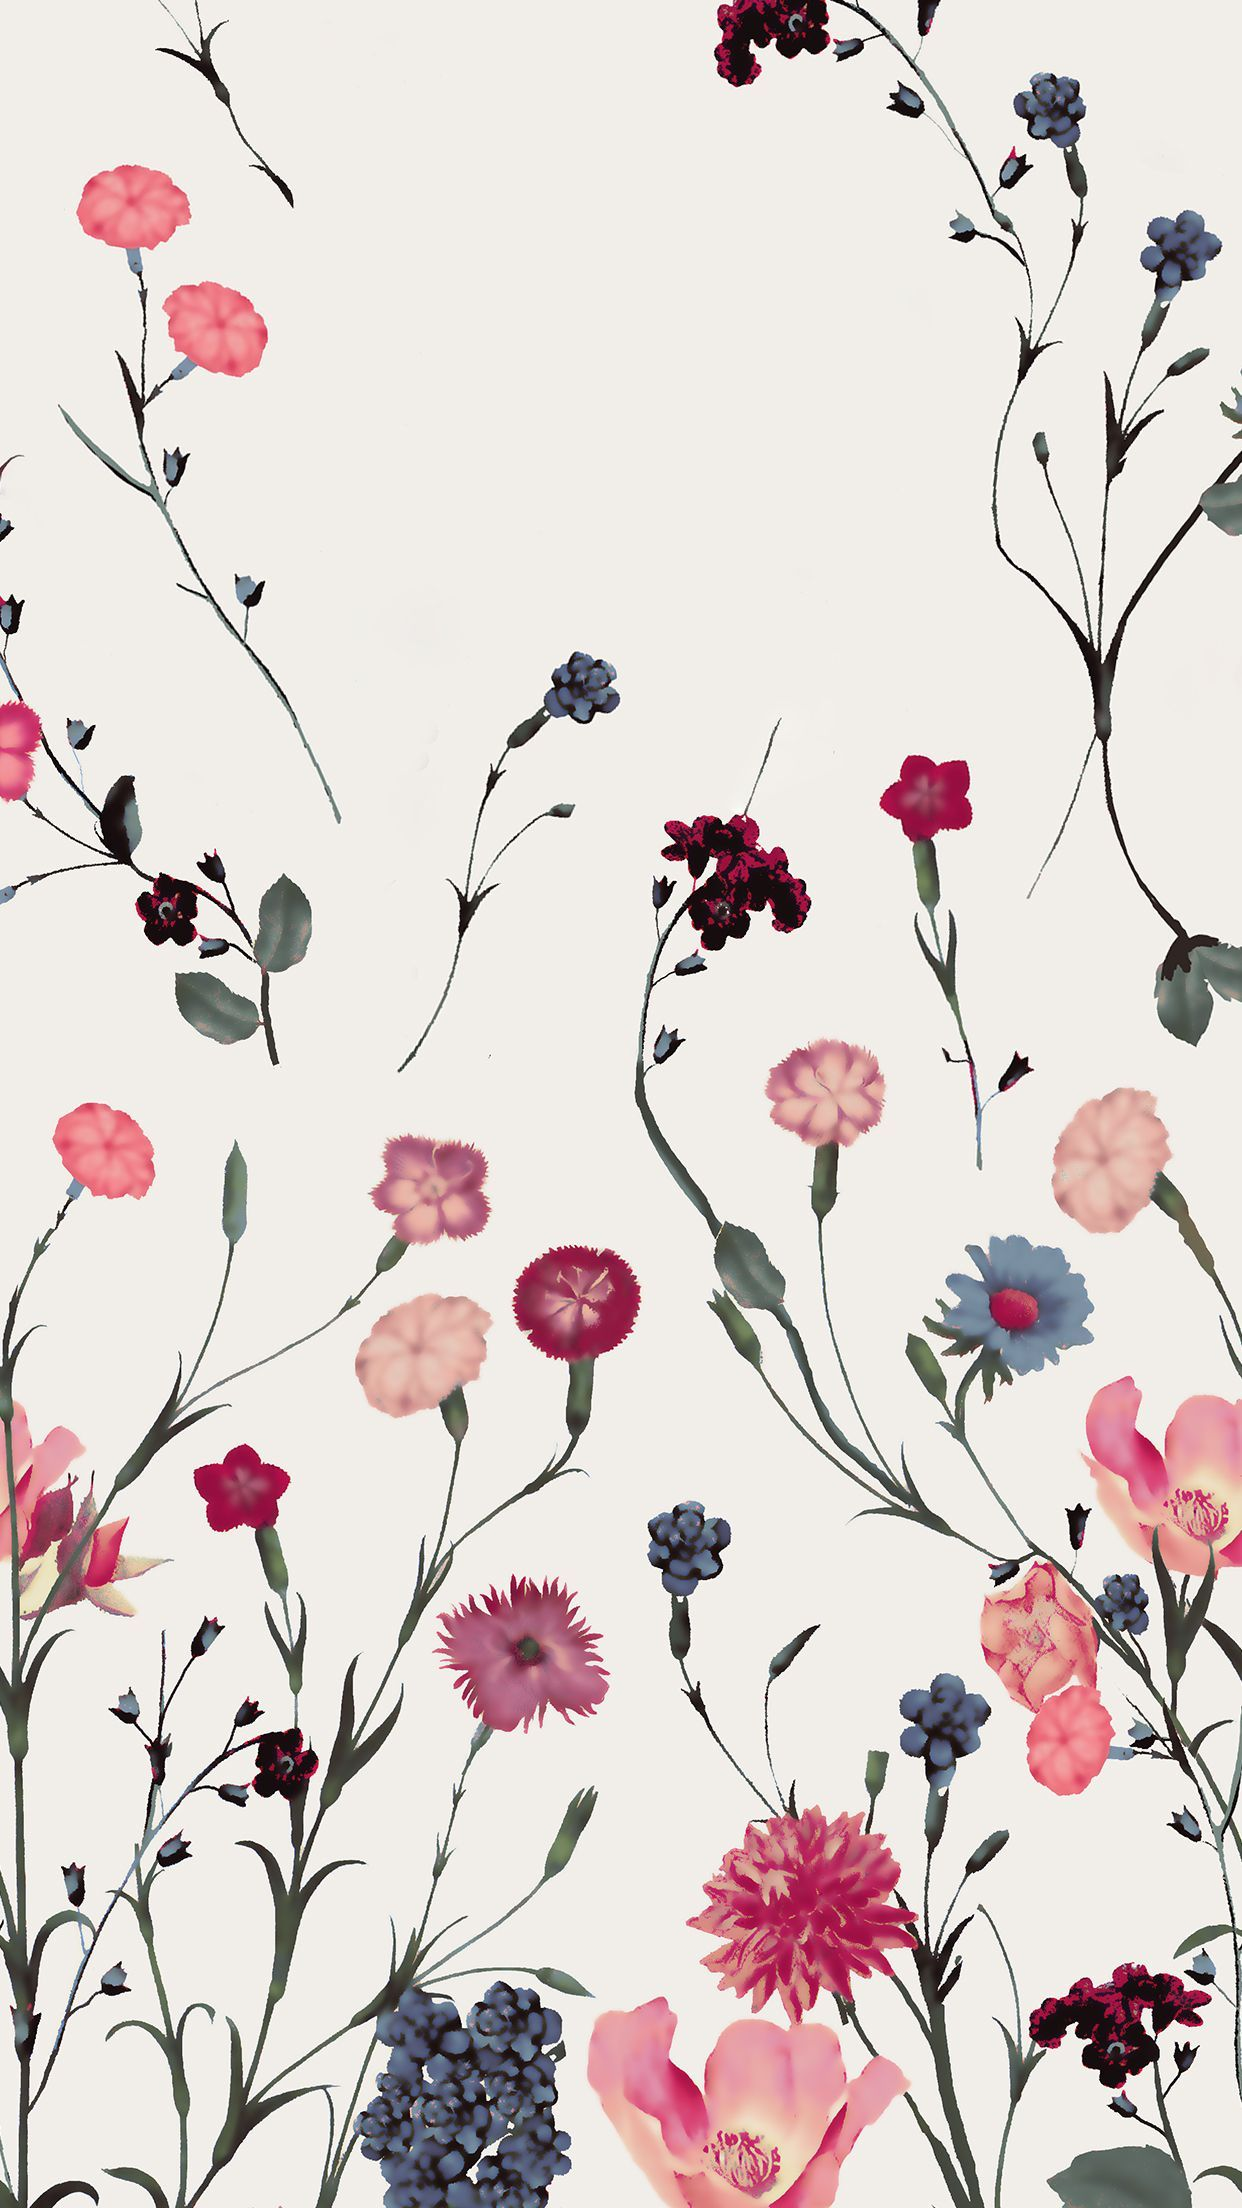 Unduh 7300 Koleksi Wallpaper Iphone Floral Terbaik